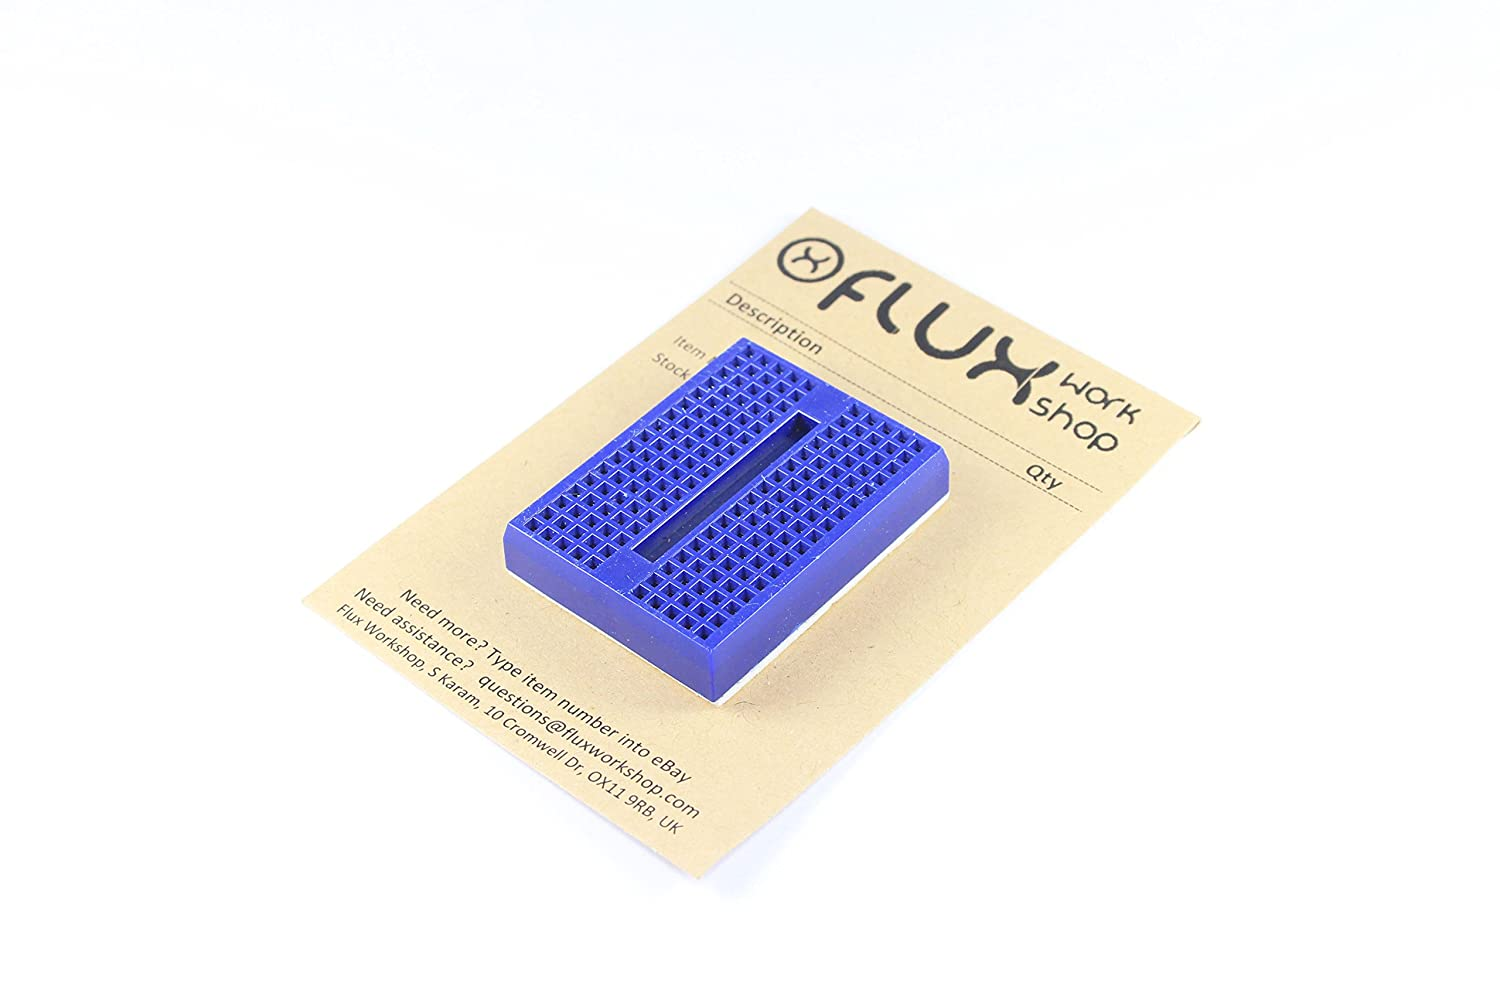 SYB-170 170 Point Blue Solderless Breadboard Prototyping Arduino Unbranded/Generic